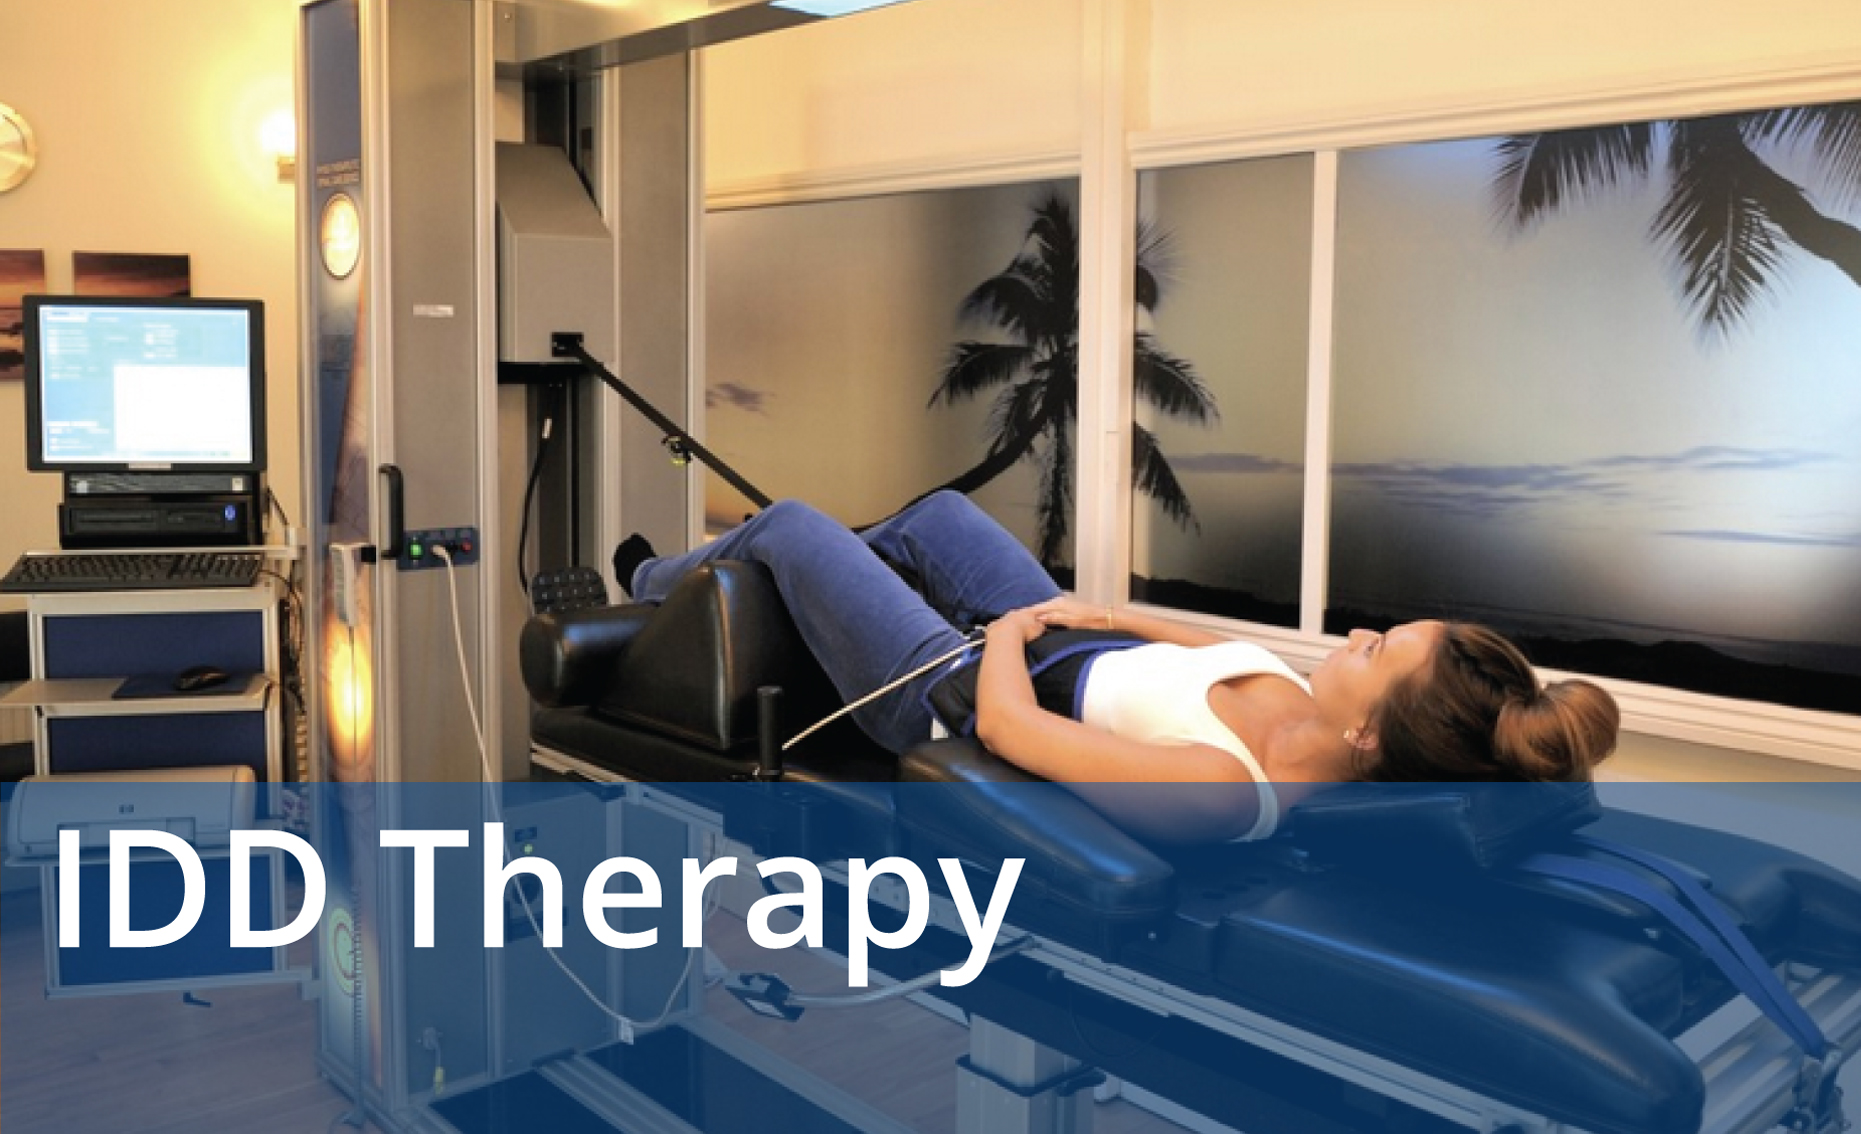 WOMAN - IDD THERAPY